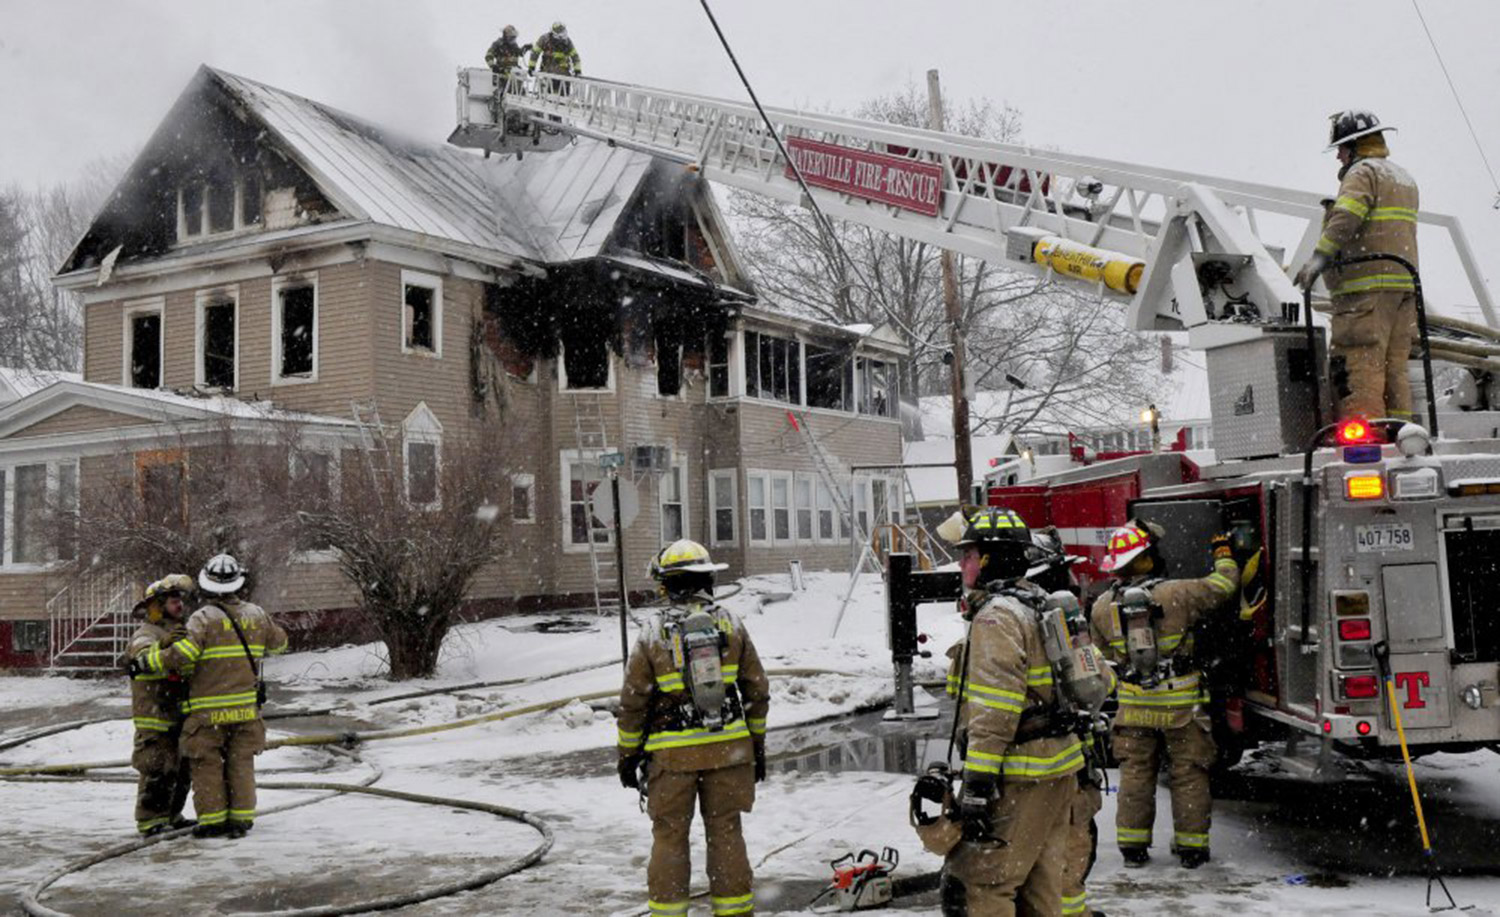 Dozens of firefighters from neighboring departments fight a fire that destroyed an apartment building on Summer Street in Waterville early Wednesday morning.